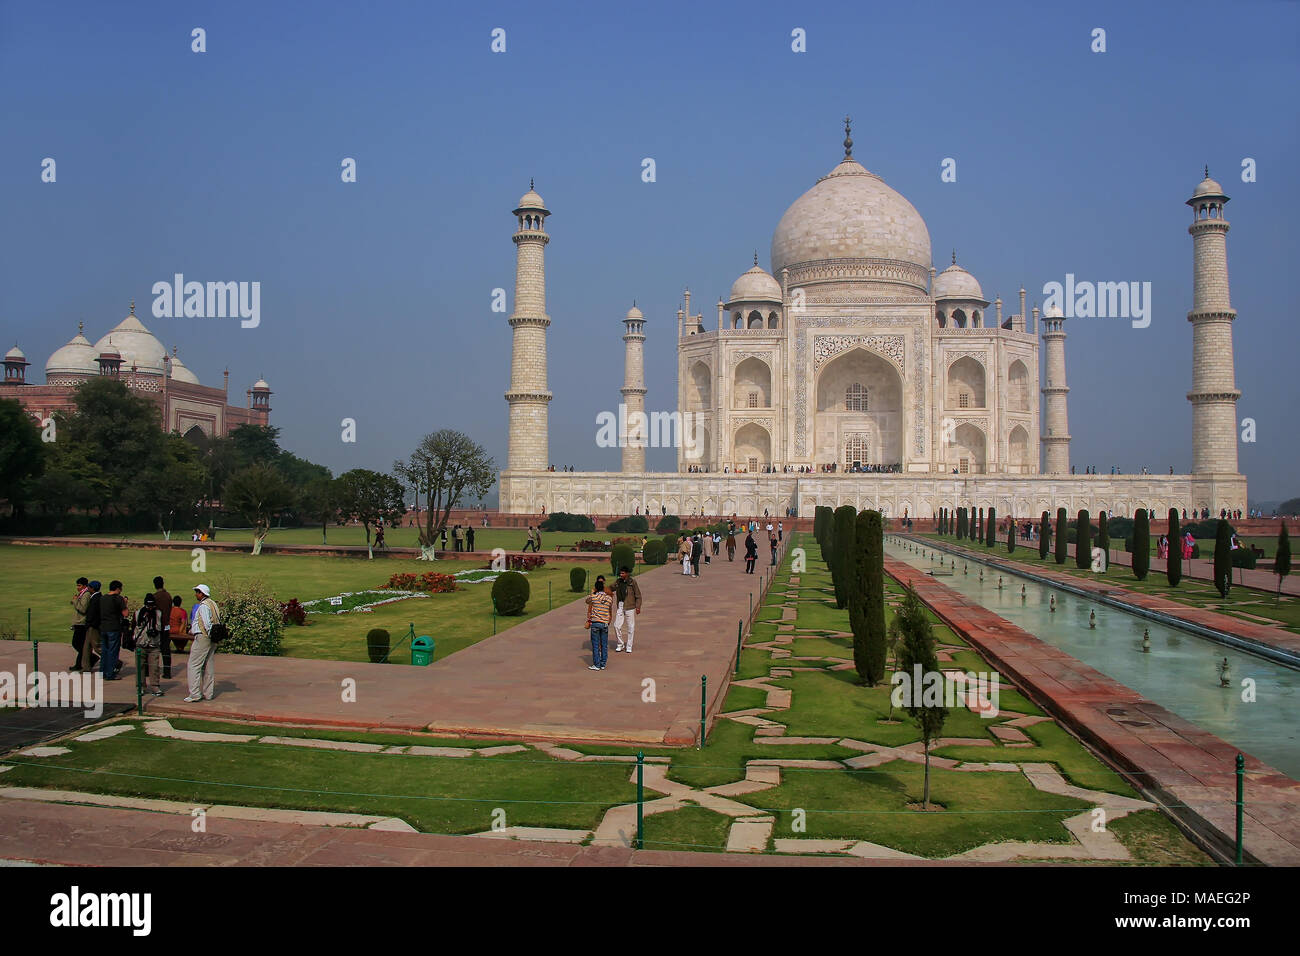 Taj Mahal with charbagh garden in Agra, Uttar Pradesh, India. It was build in 1632 by Emperor Shah Jahan as a memorial for his second wife Mumtaz Maha - Stock Image